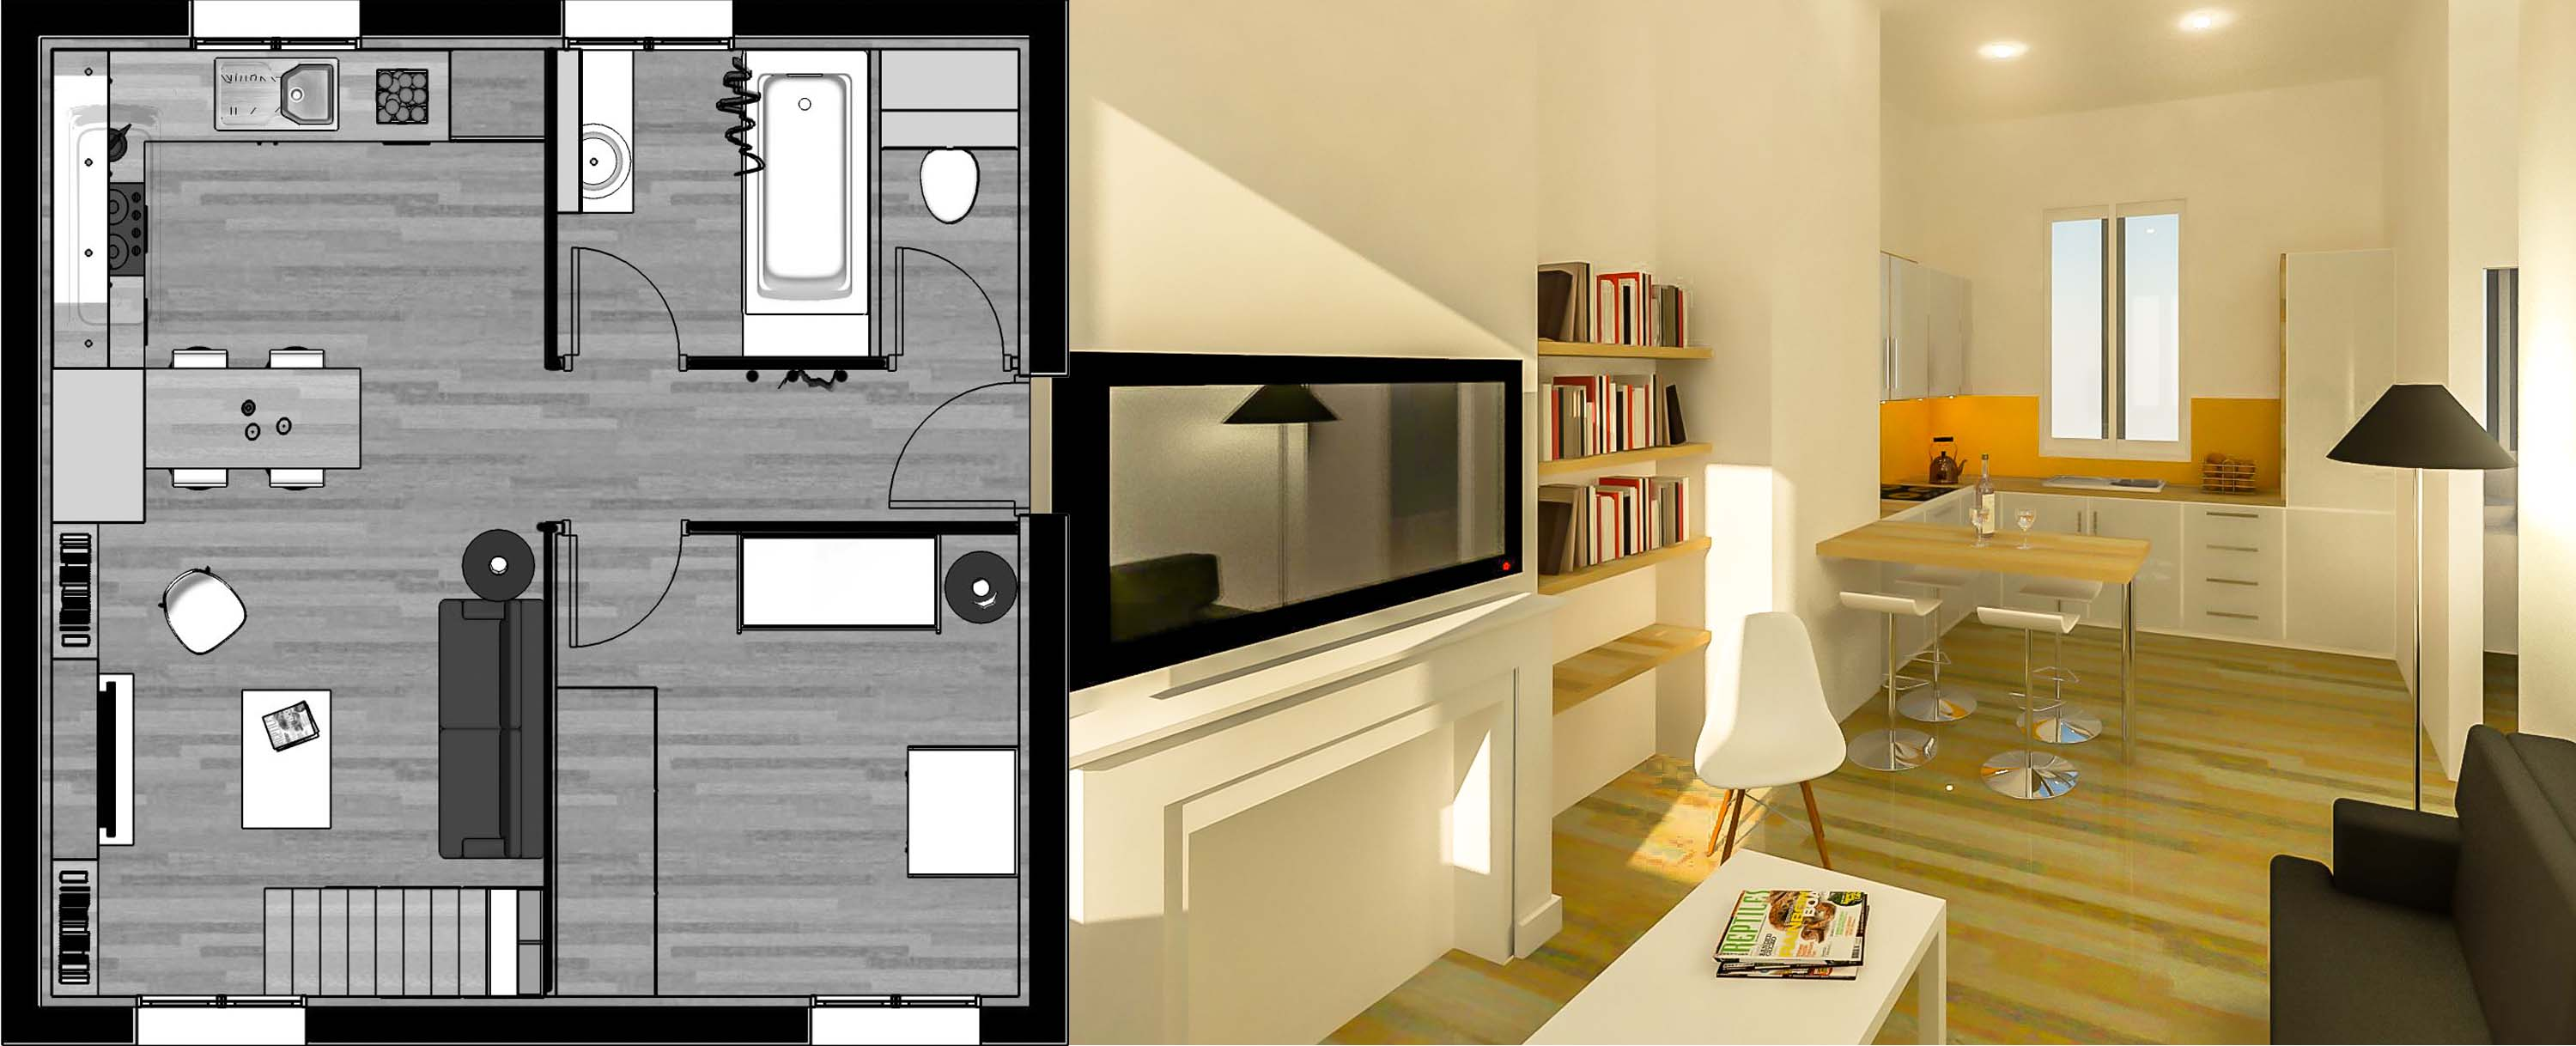 am nager une petite surface archid codesign. Black Bedroom Furniture Sets. Home Design Ideas